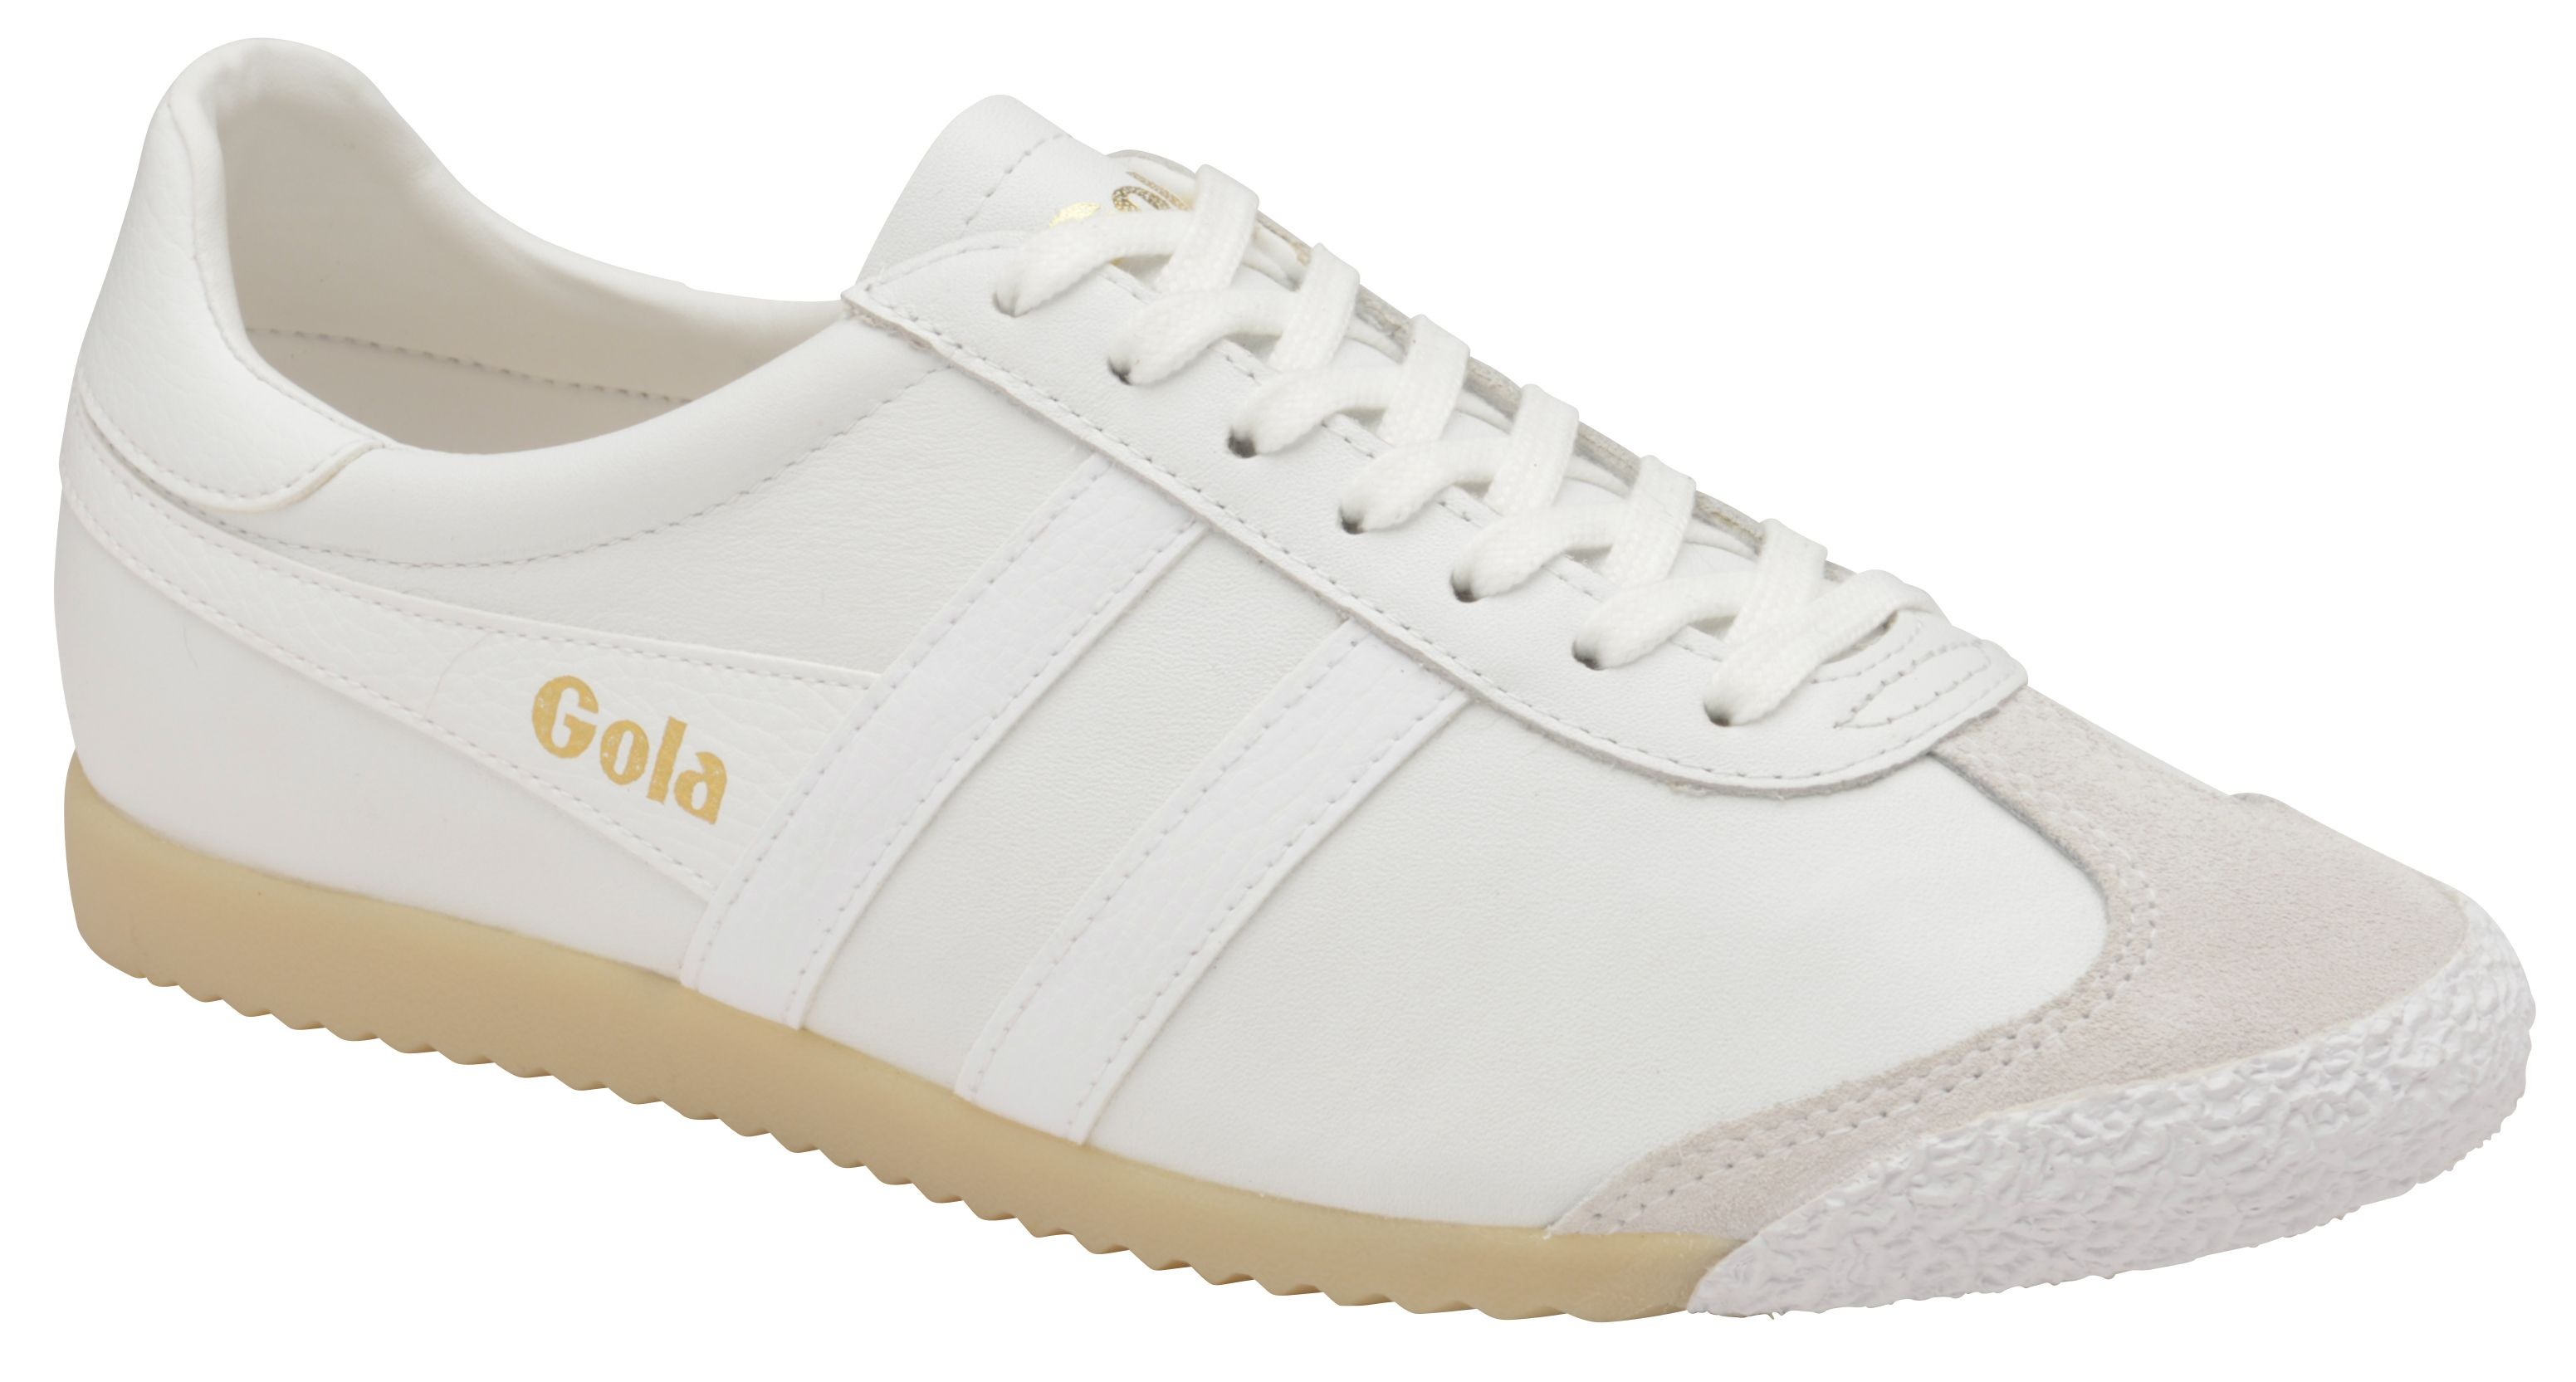 Gola Harrier 50 Leather Lace Up Trainers, Winter White